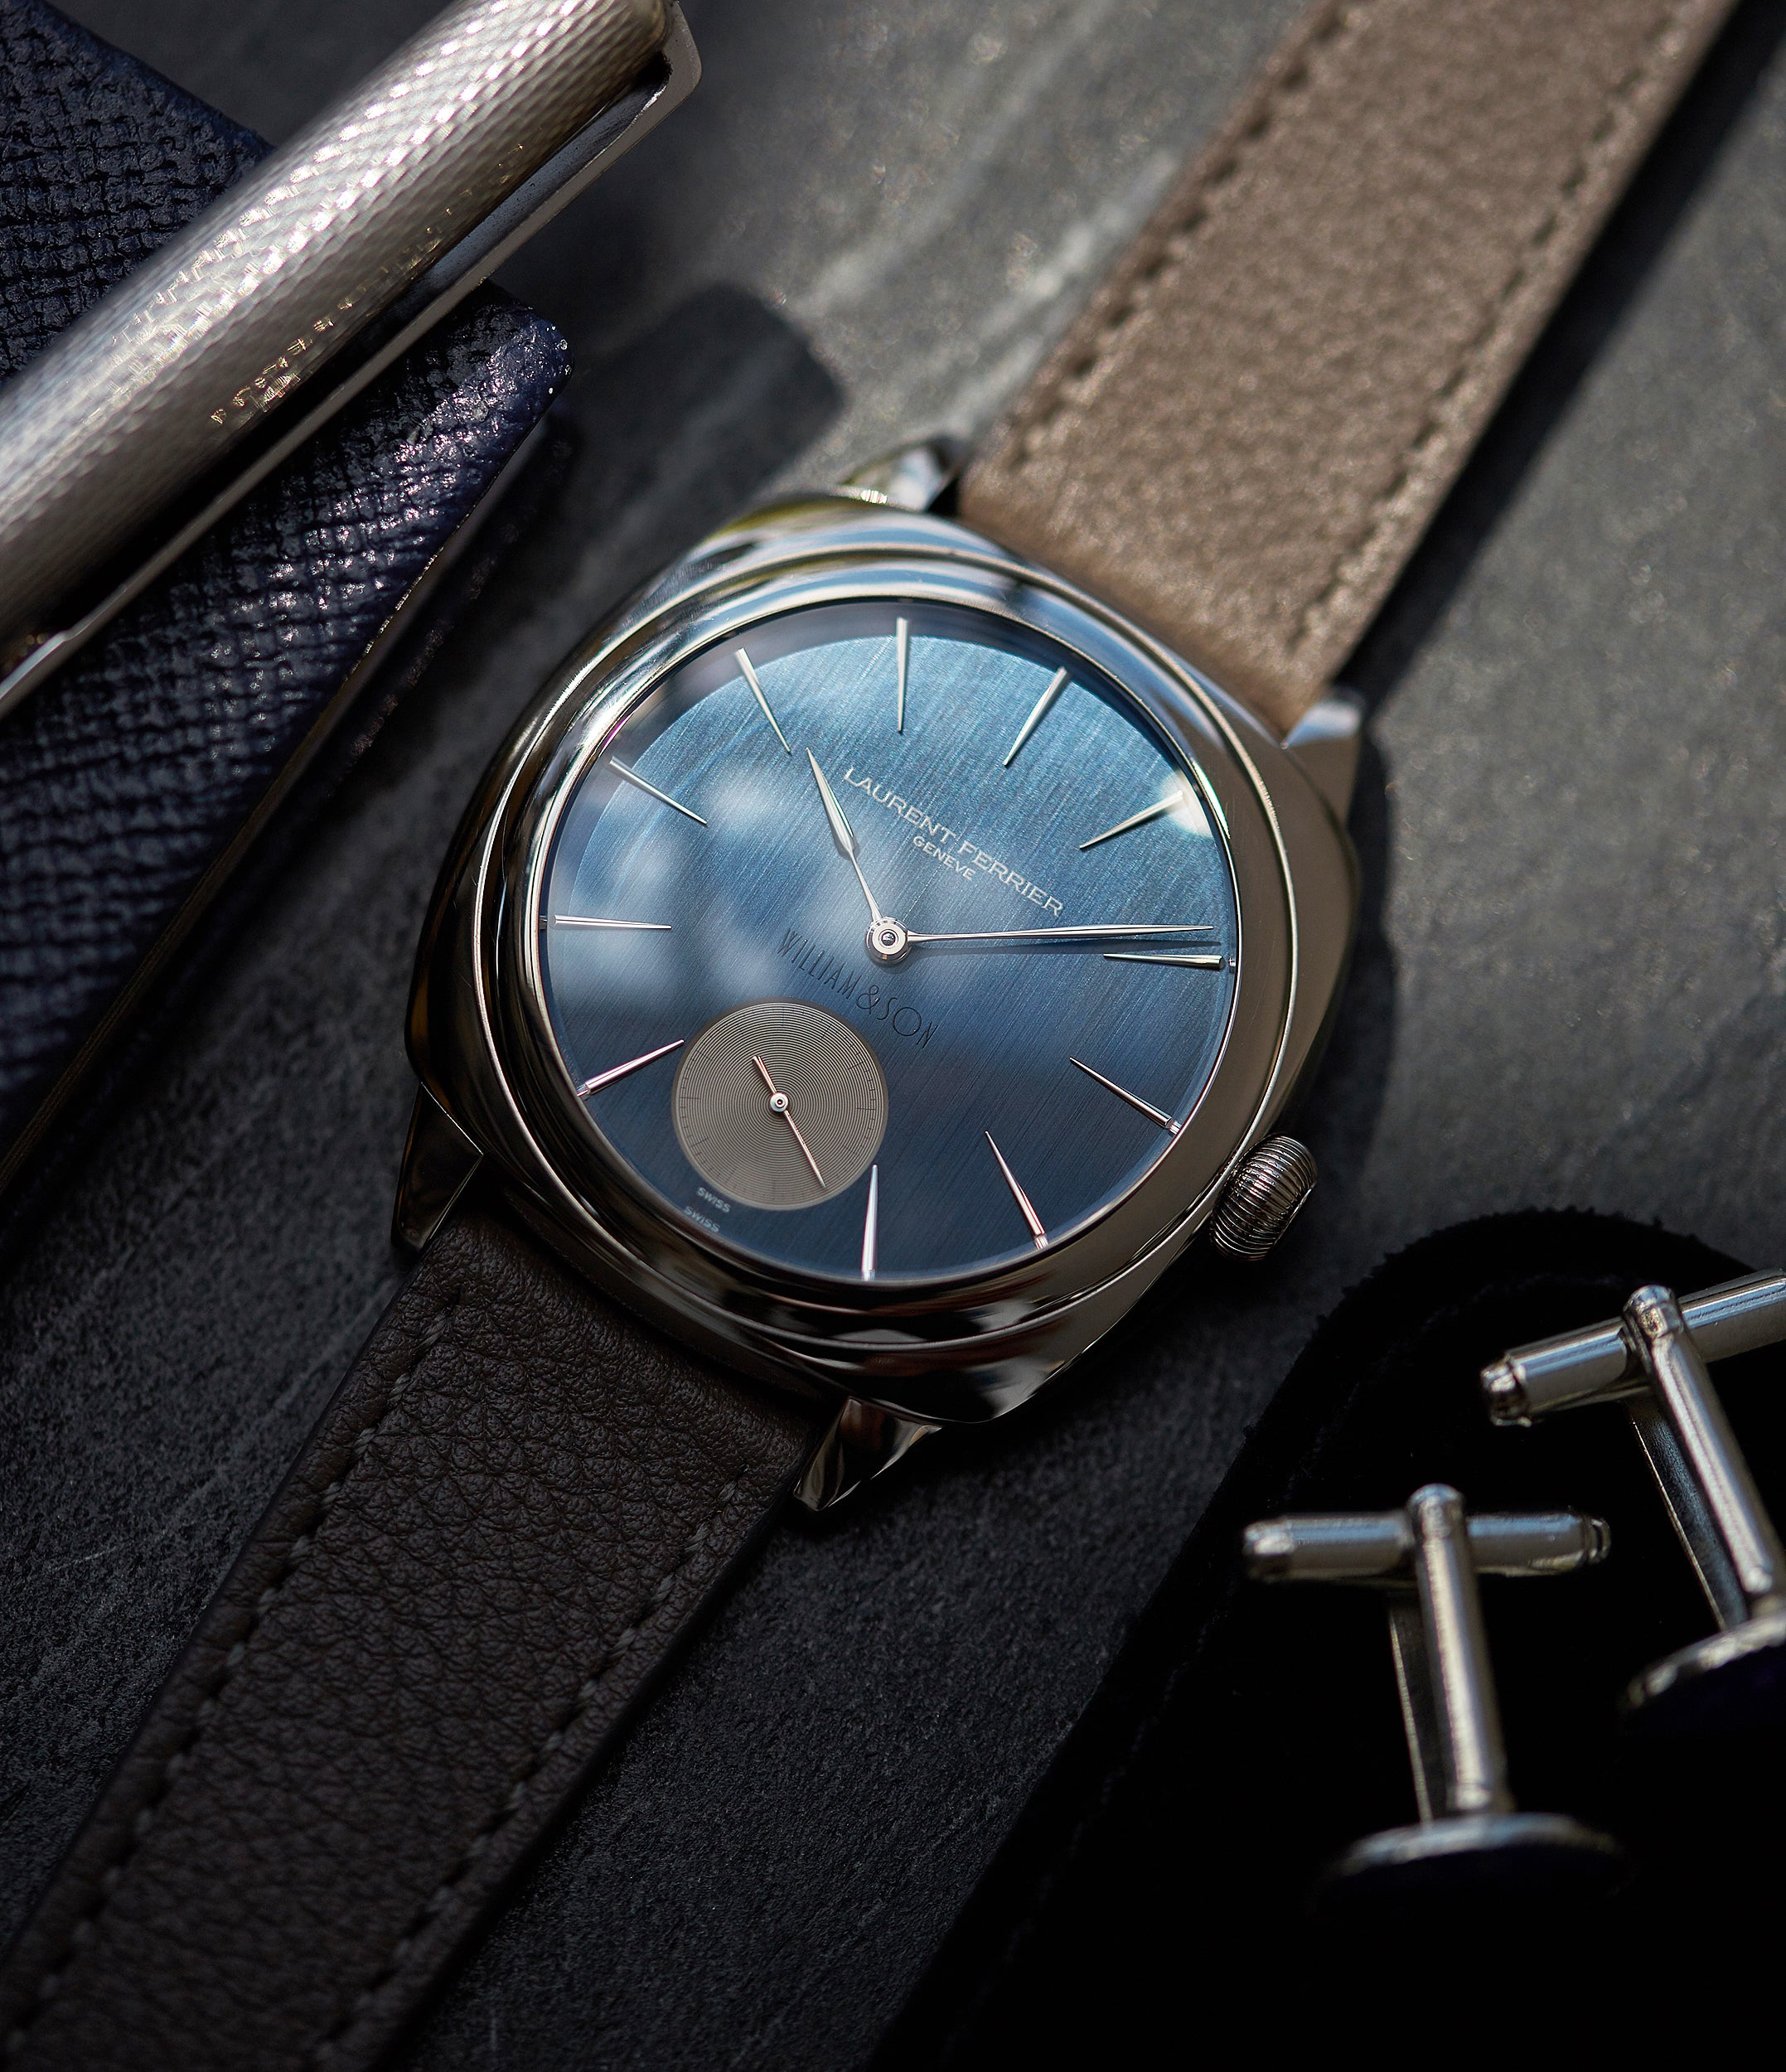 luxury dress watch Laurent Ferrier Micro Rotor LF 229.01 Galet Square William&Son blue dial white gold watch online at A Collected Man London approved seller of preowned independent watchmakers